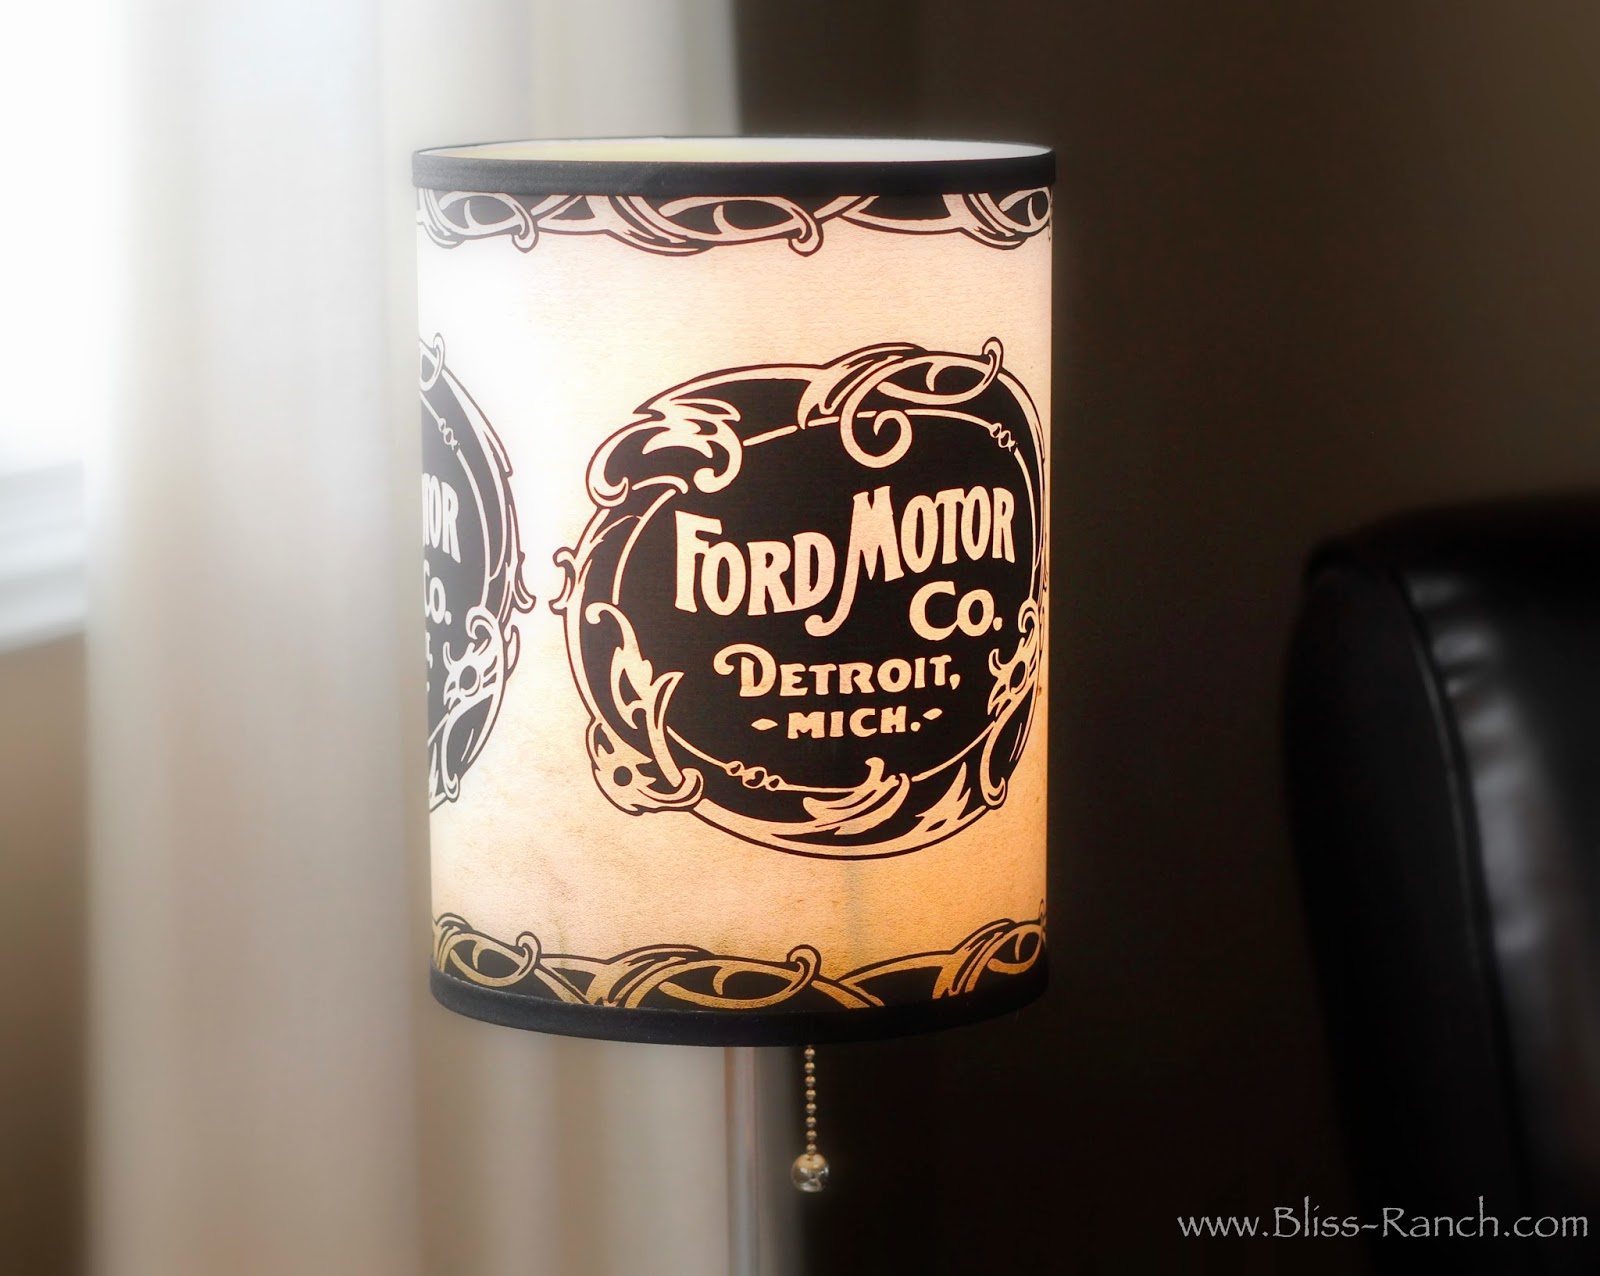 Ford Lamp in a box, Bliss-Ranch.com